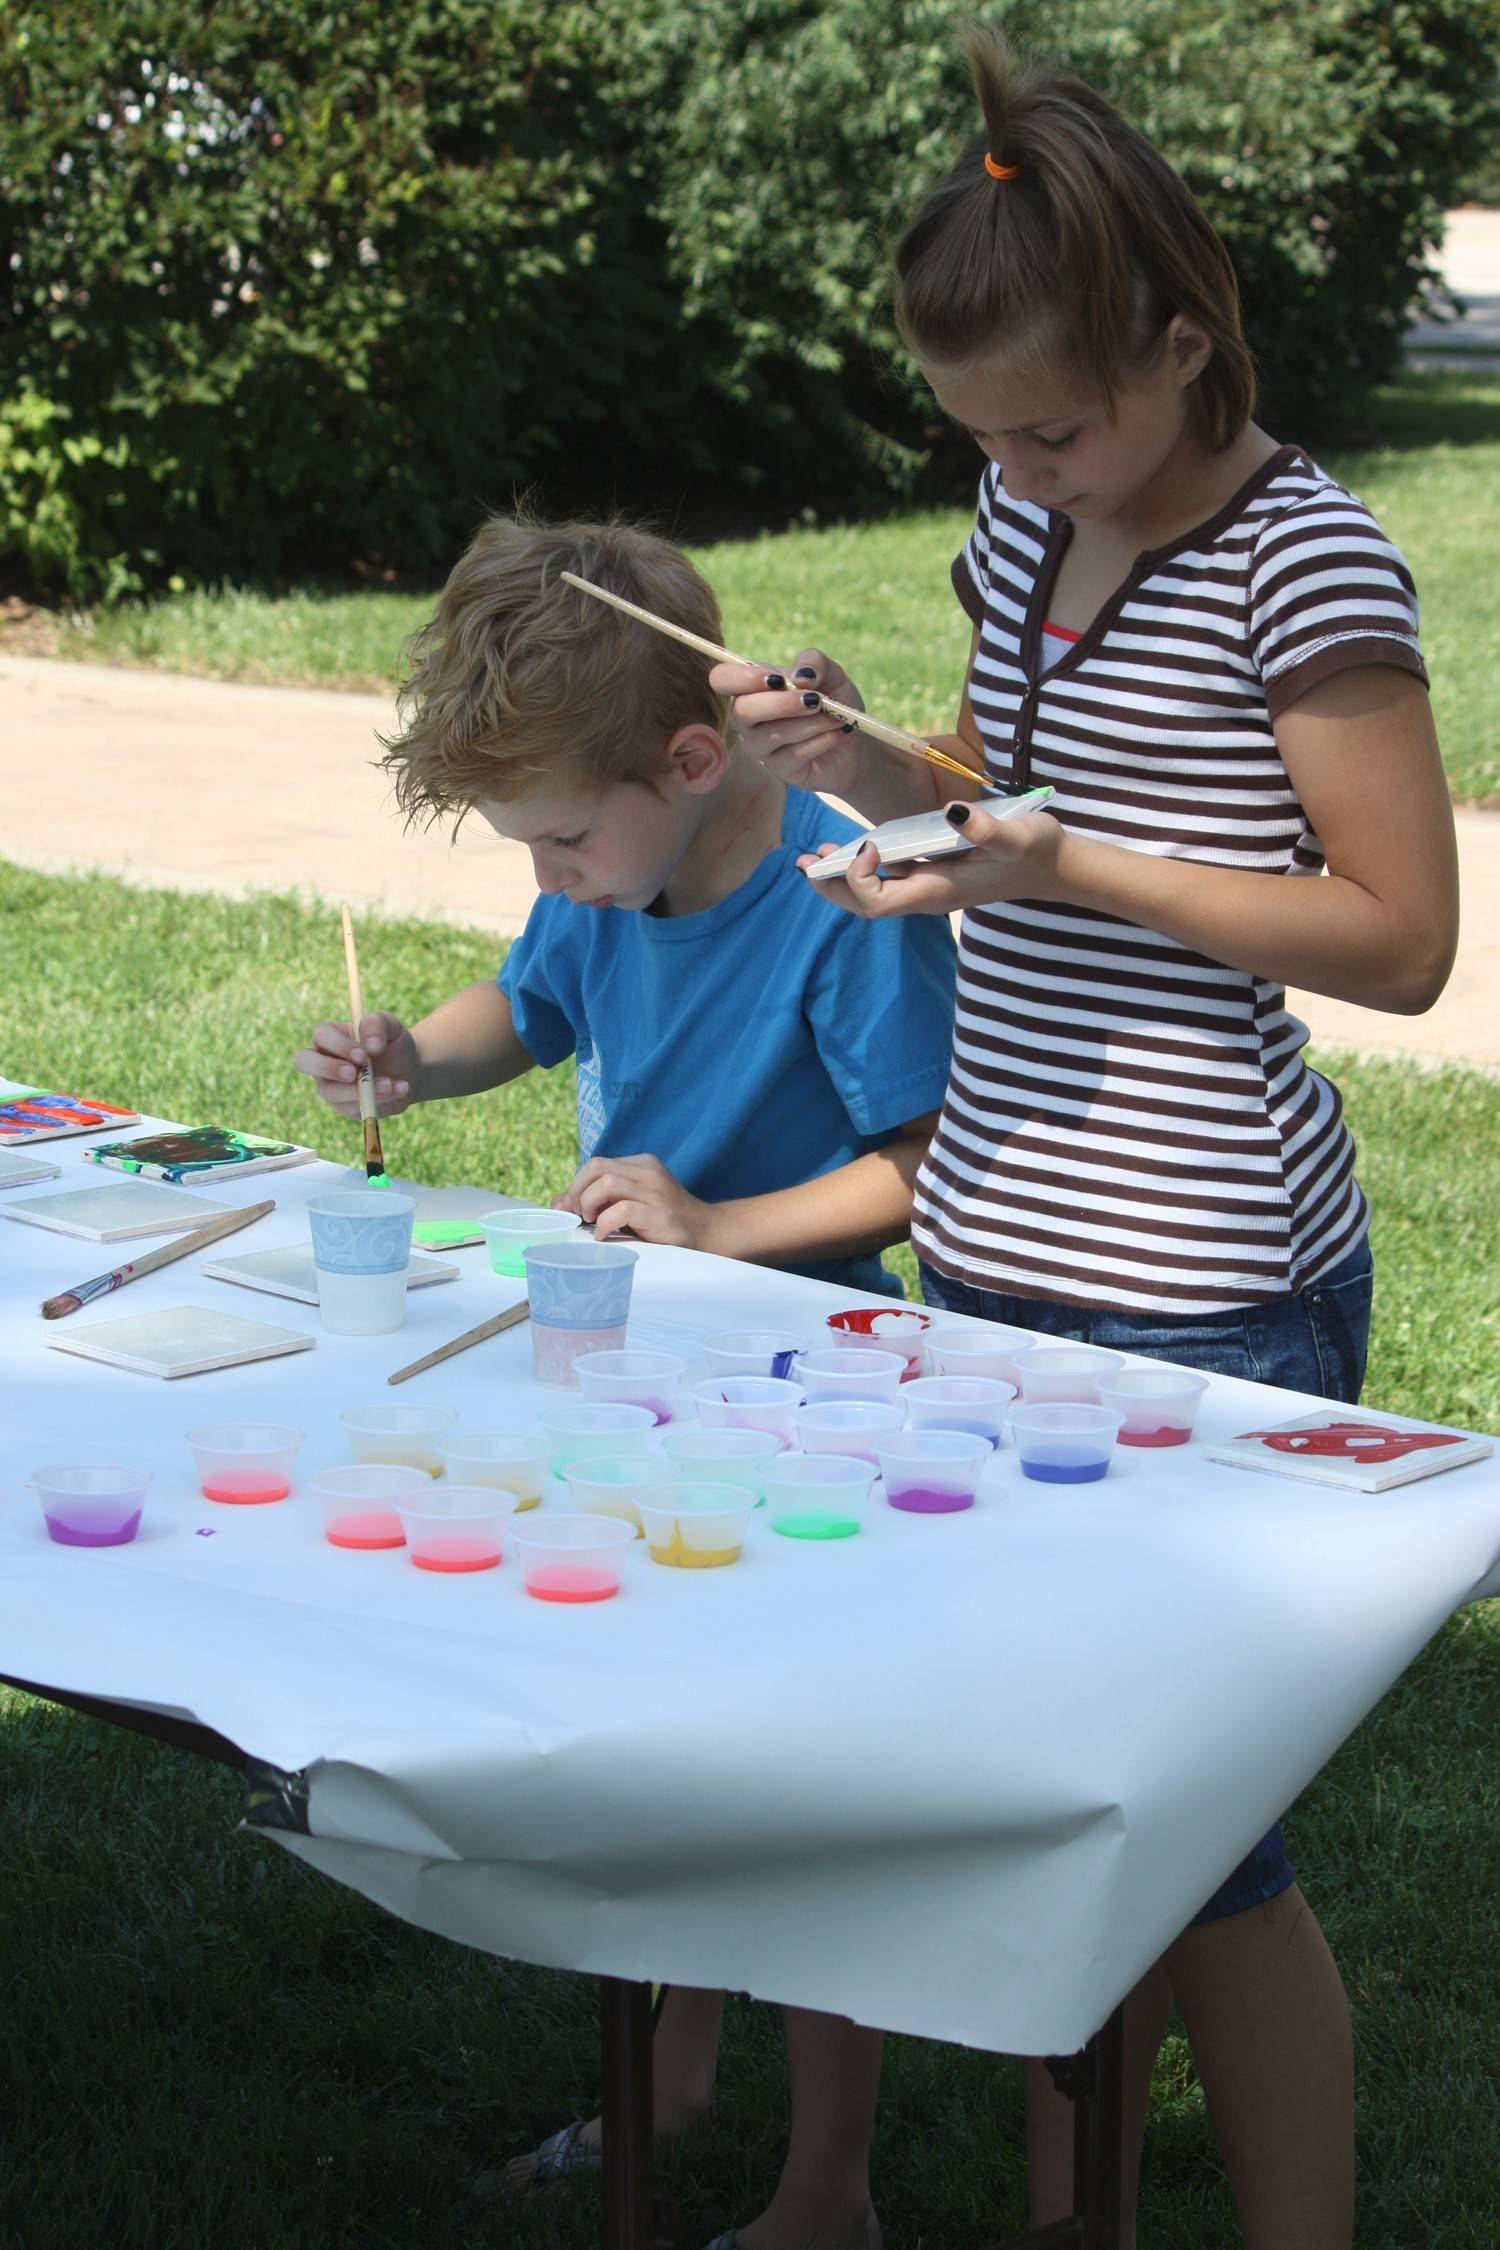 Children will have the opportunity to take on arts projects Saturday during Arts in the Park at Towne Square in downtown Palatine. The free event, which runs from 10 a.m. to 2 p.m., also will include several live musical performances.